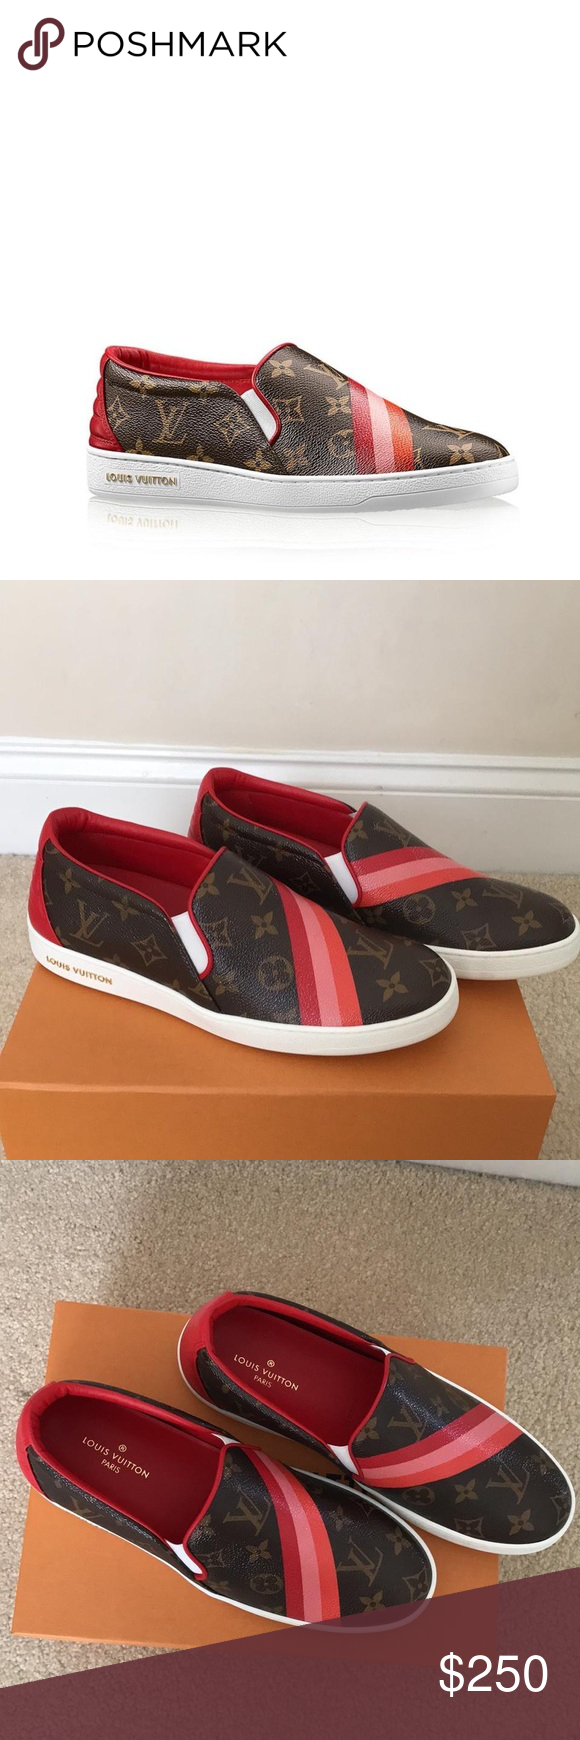 126fbe6d2869 Louis Vuitton Striped Canvas  amp  Leather Slipon Shoe 💖CONDITION New With  Tags This item